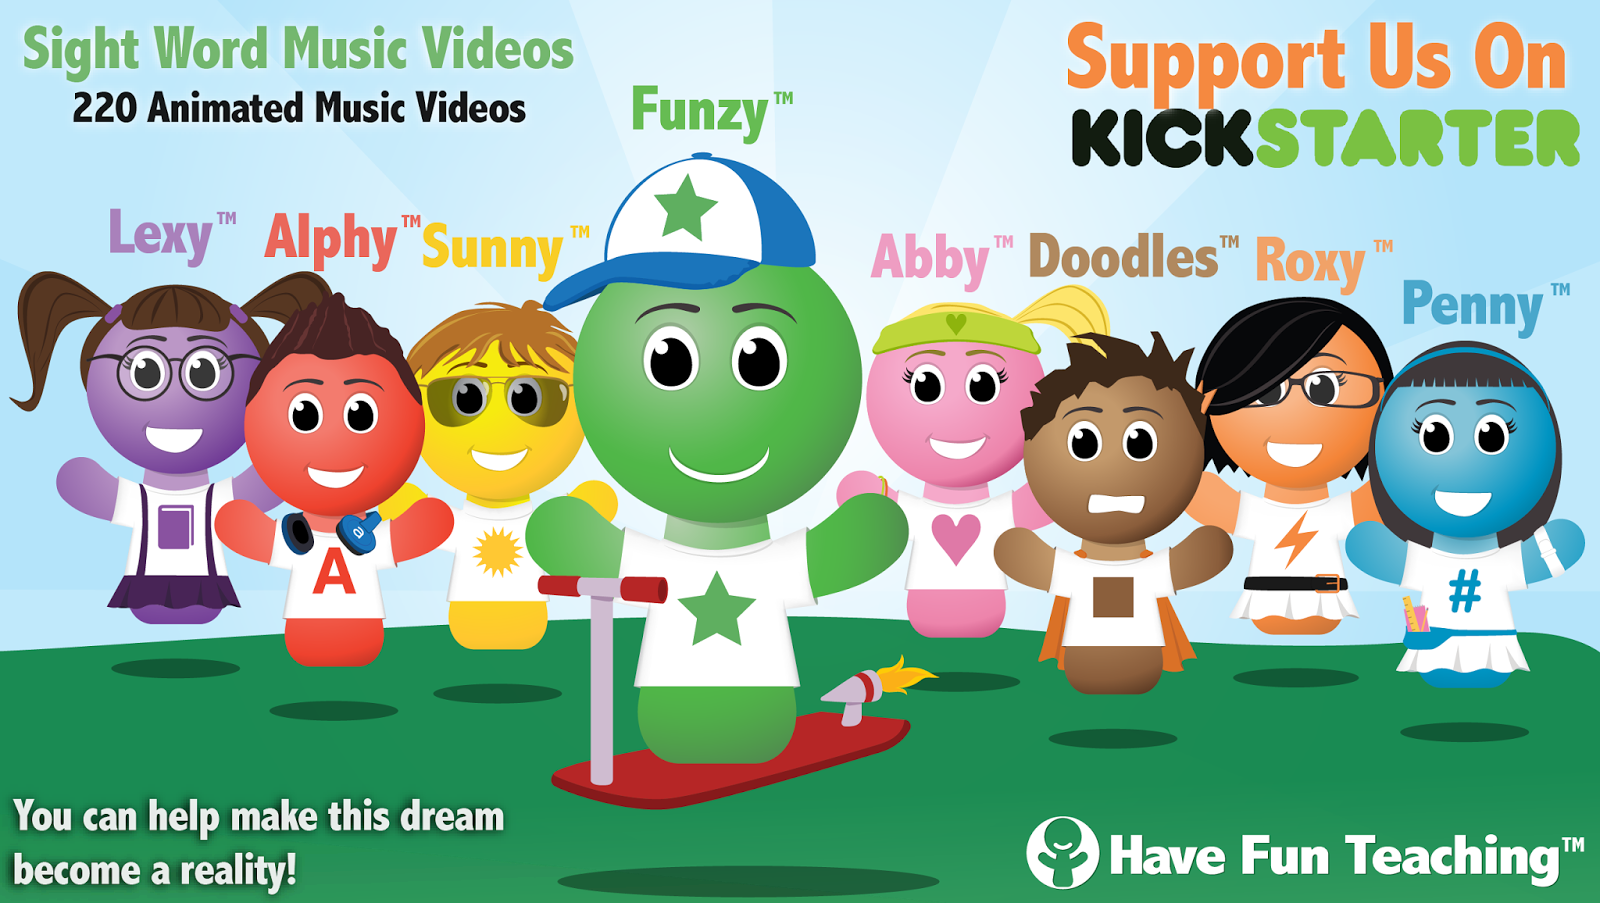 KickStarter+Marketing+Ad 220 Sight Word Videos For Your Classroom